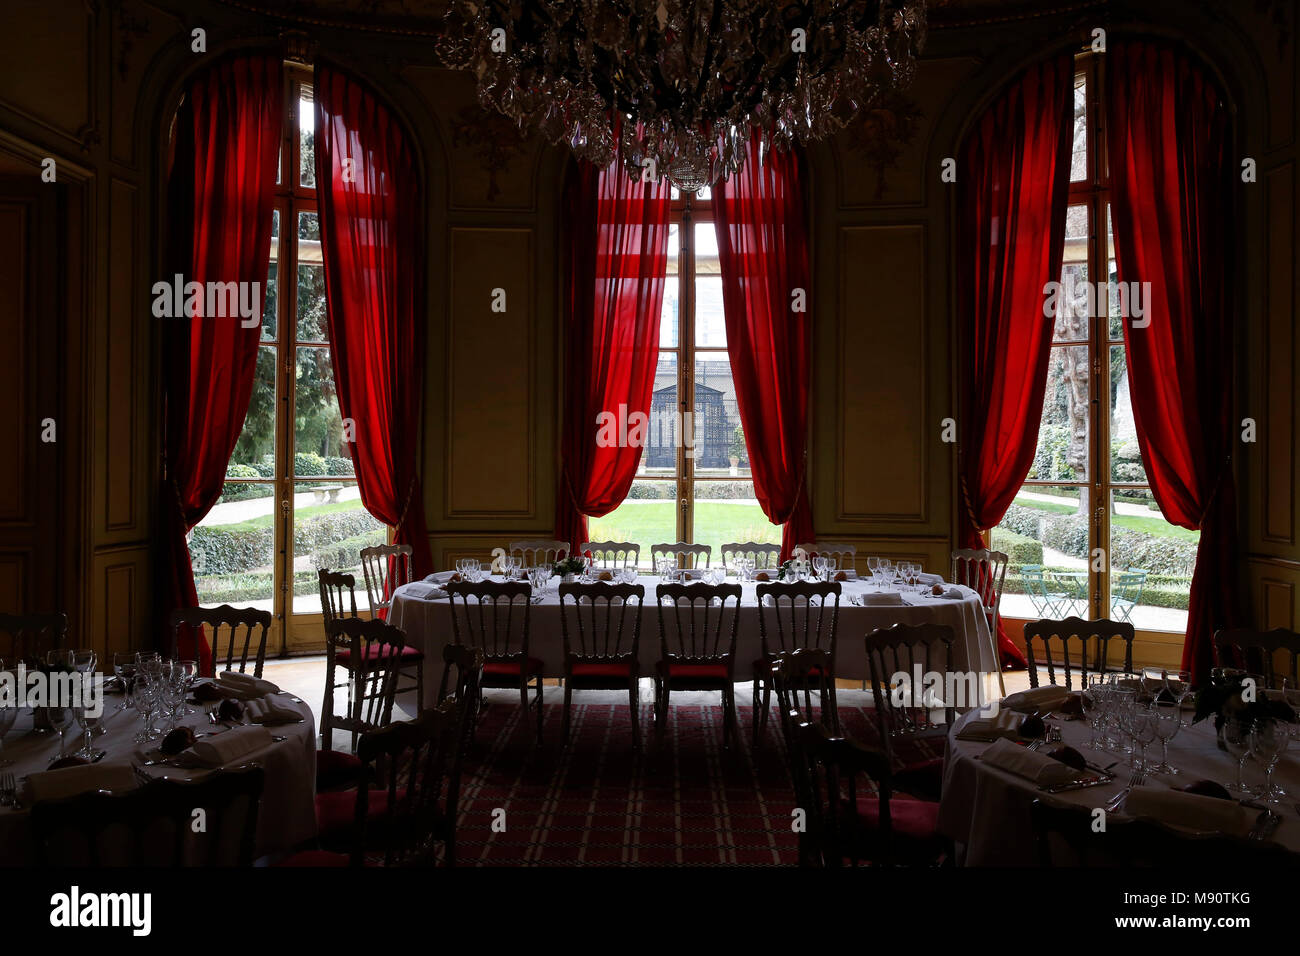 Private dining hall in Paris, France. - Stock Image